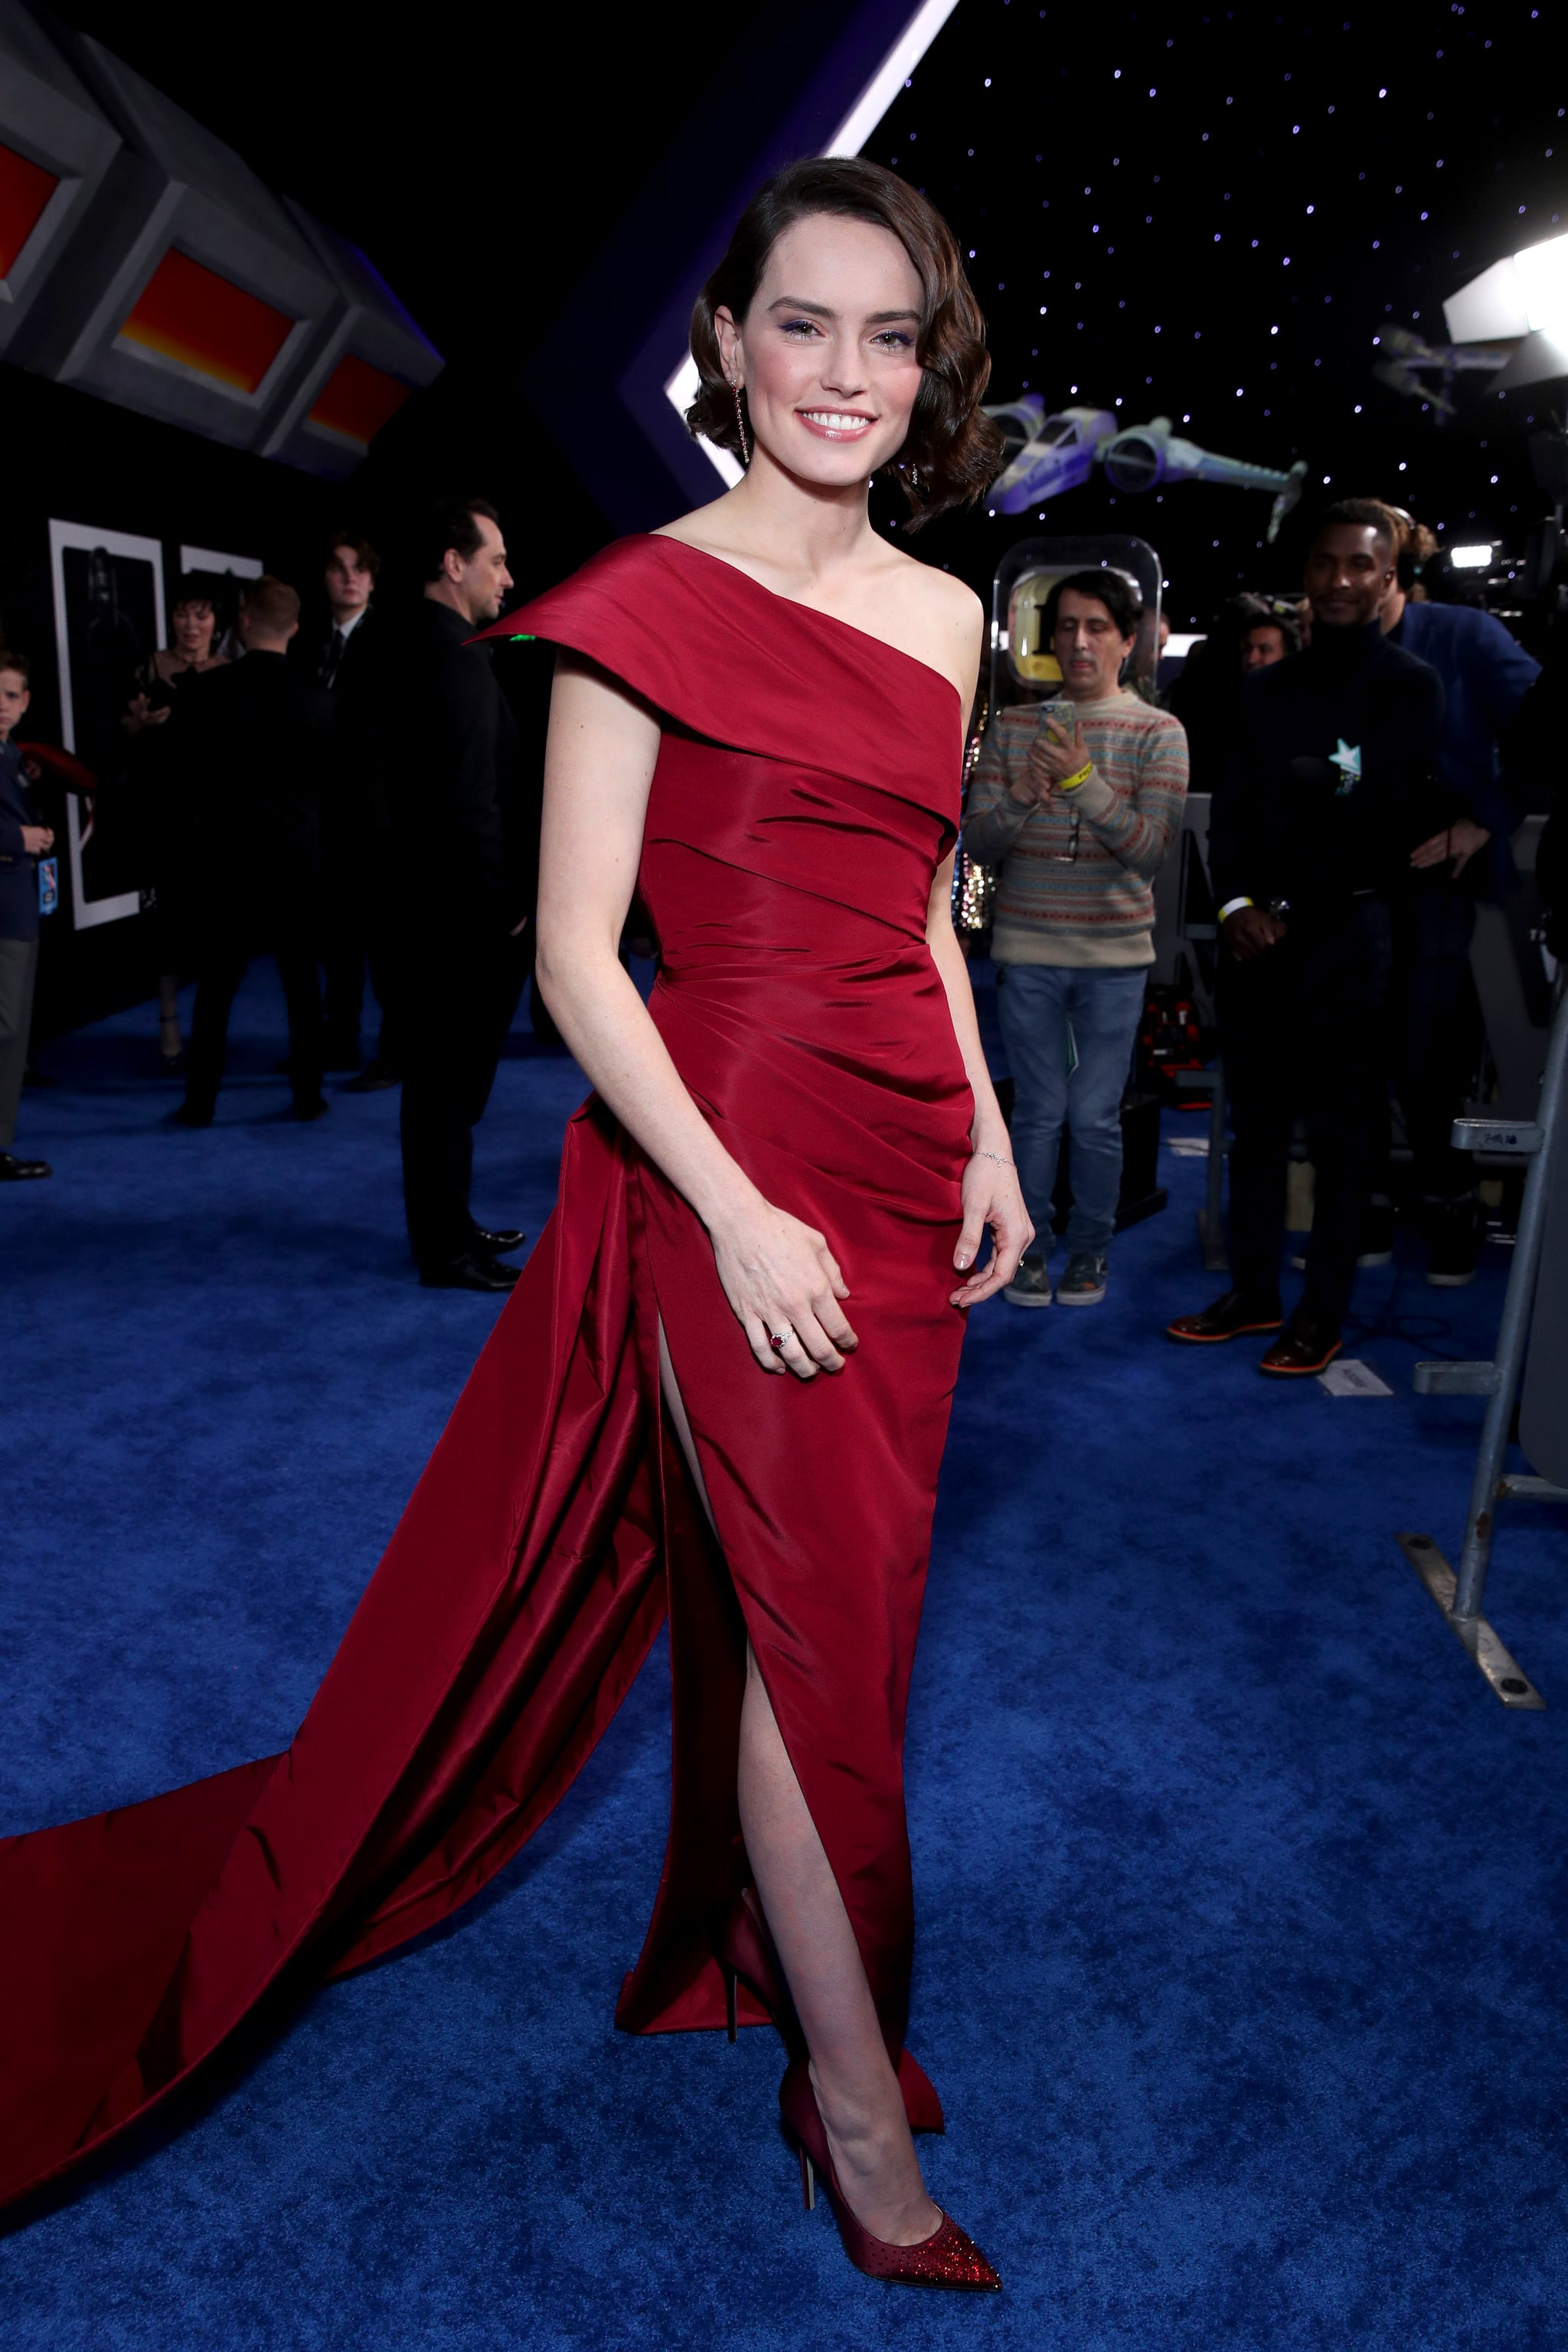 Daisy Ridley At The Star Wars The Rise Of Skywalker Premiere In La Celebrities Were Out In Full Force For The Star Wars The Rise Of Skywalker World Premiere Popsugar